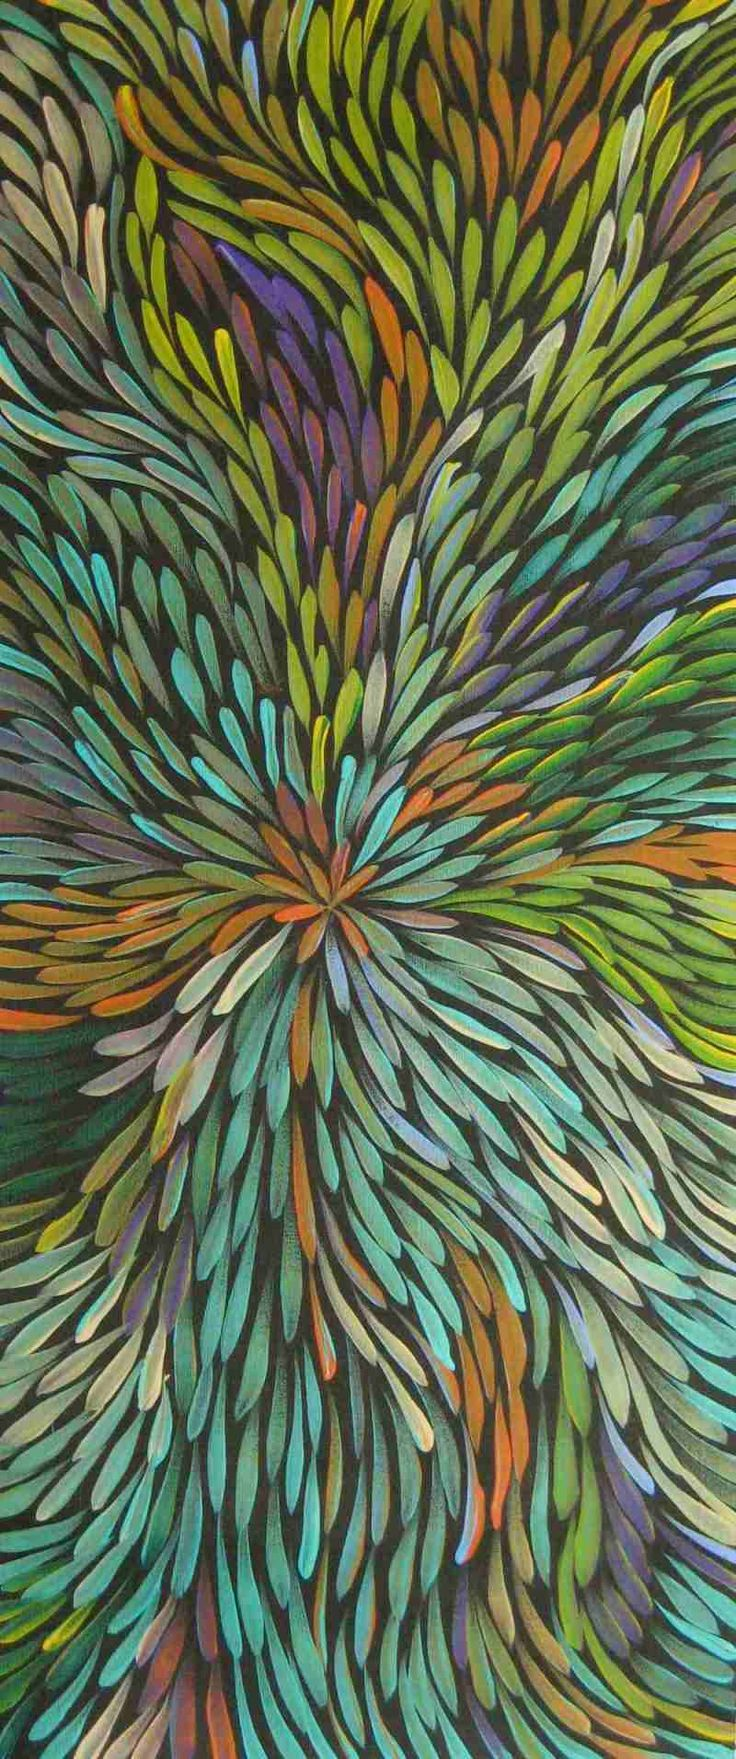 Aboriginal art is truly spectacular. Gloria Petyarre's painting here depicts a kurrajong plant